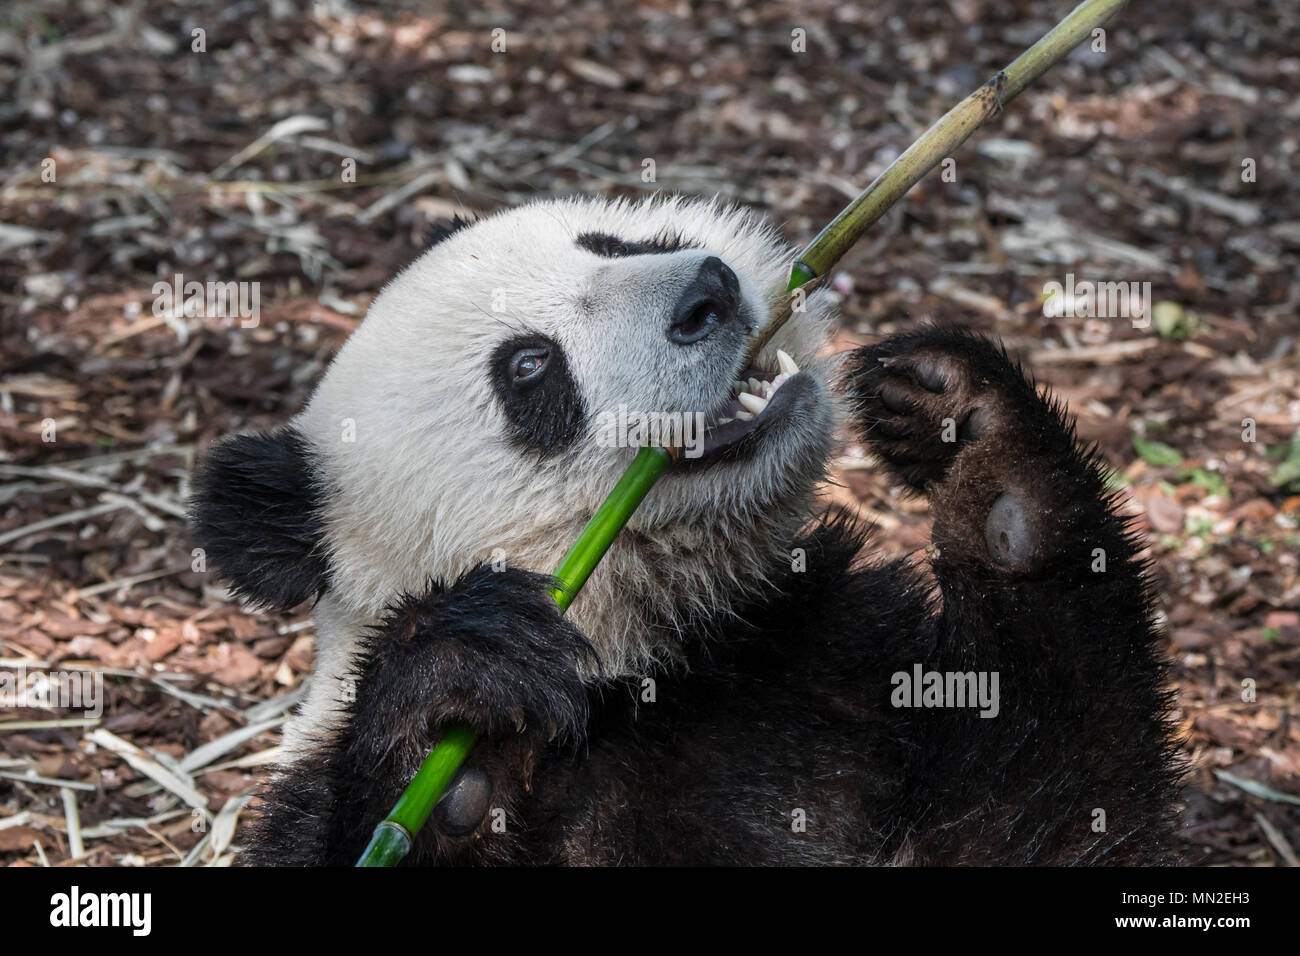 Young two year old giant panda (Ailuropoda melanoleuca) cub eating bamboo - Stock Image